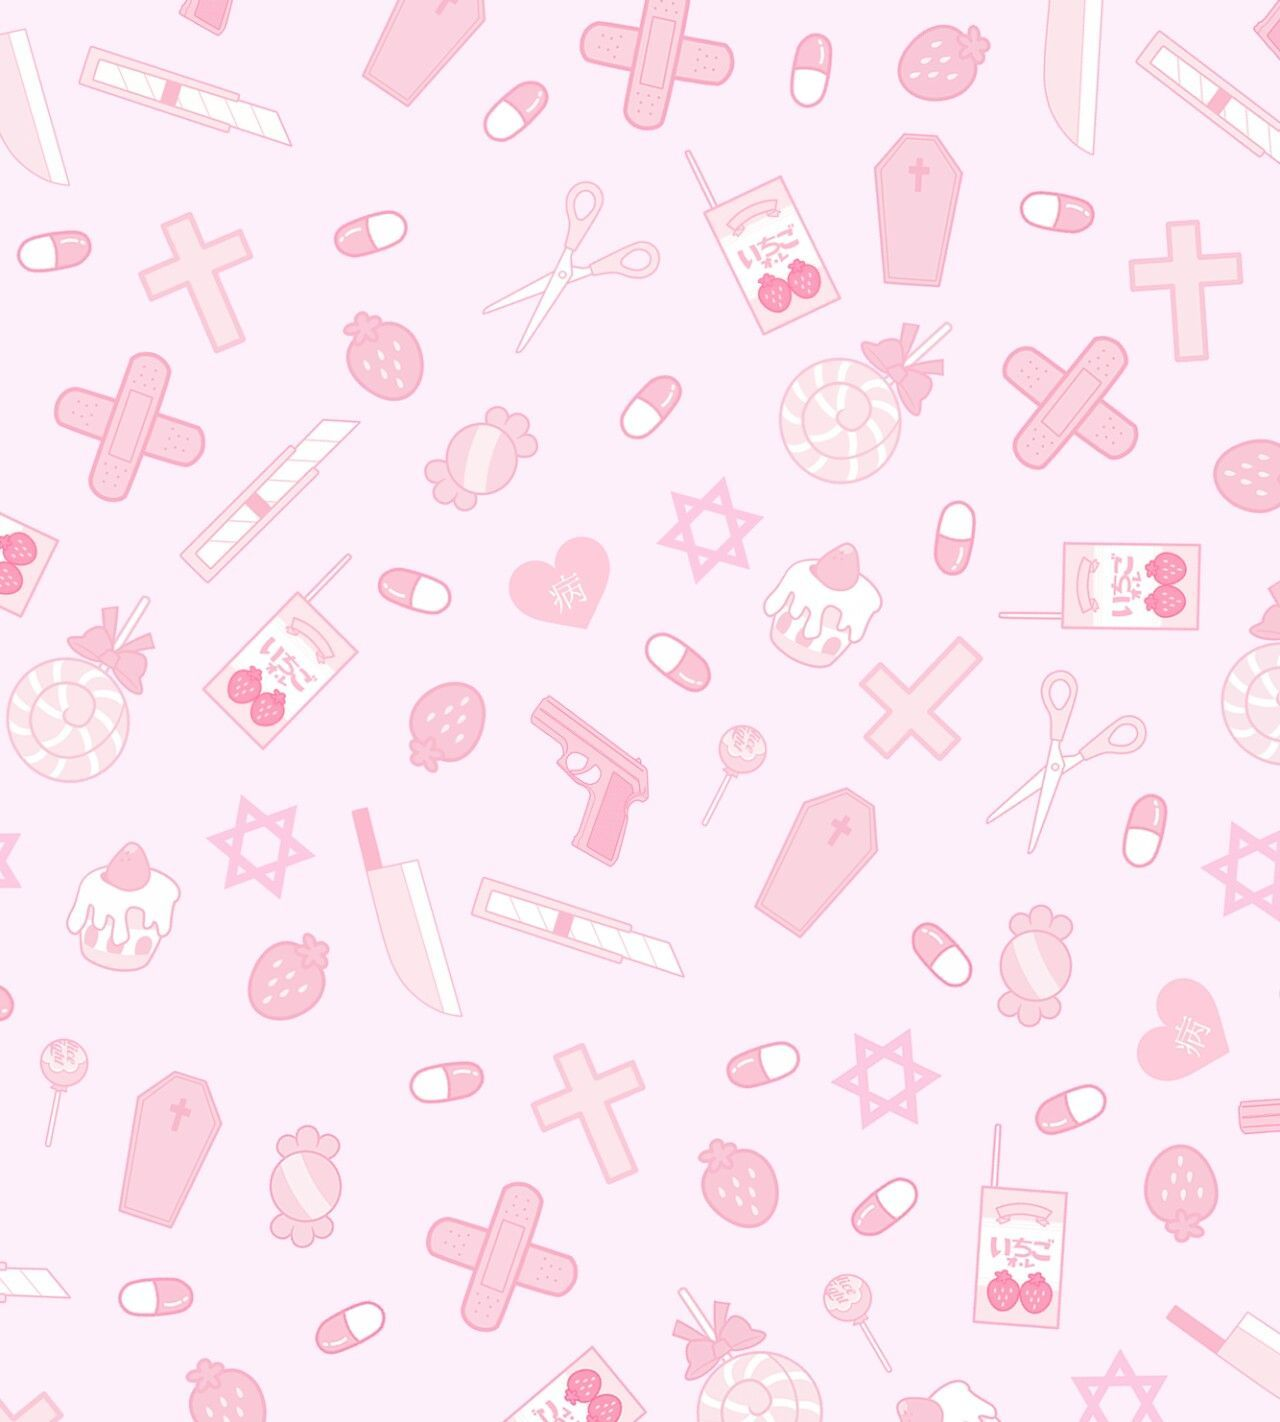 Oct 01, 2021· when they wear if you're going to just post random pics and things on your tumblr, then make the most of that randomness. Kawaii Pastel Aesthetic Wallpapers - Wallpaper Cave